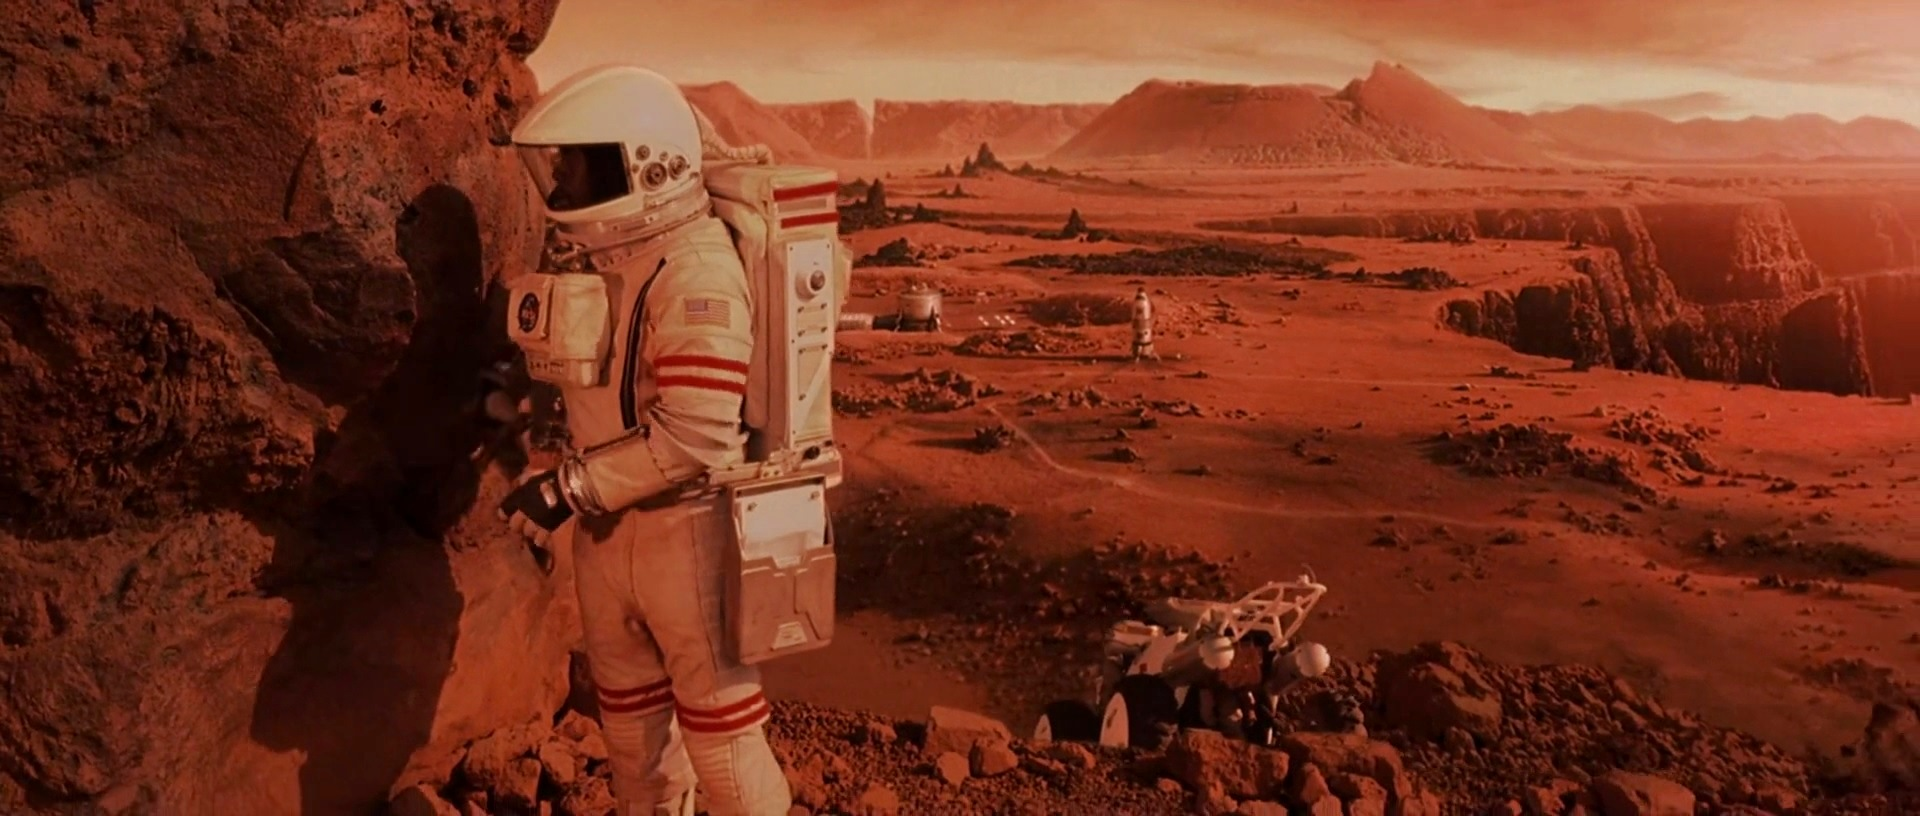 HD images from Mission to Mars 2000 movie human Mars